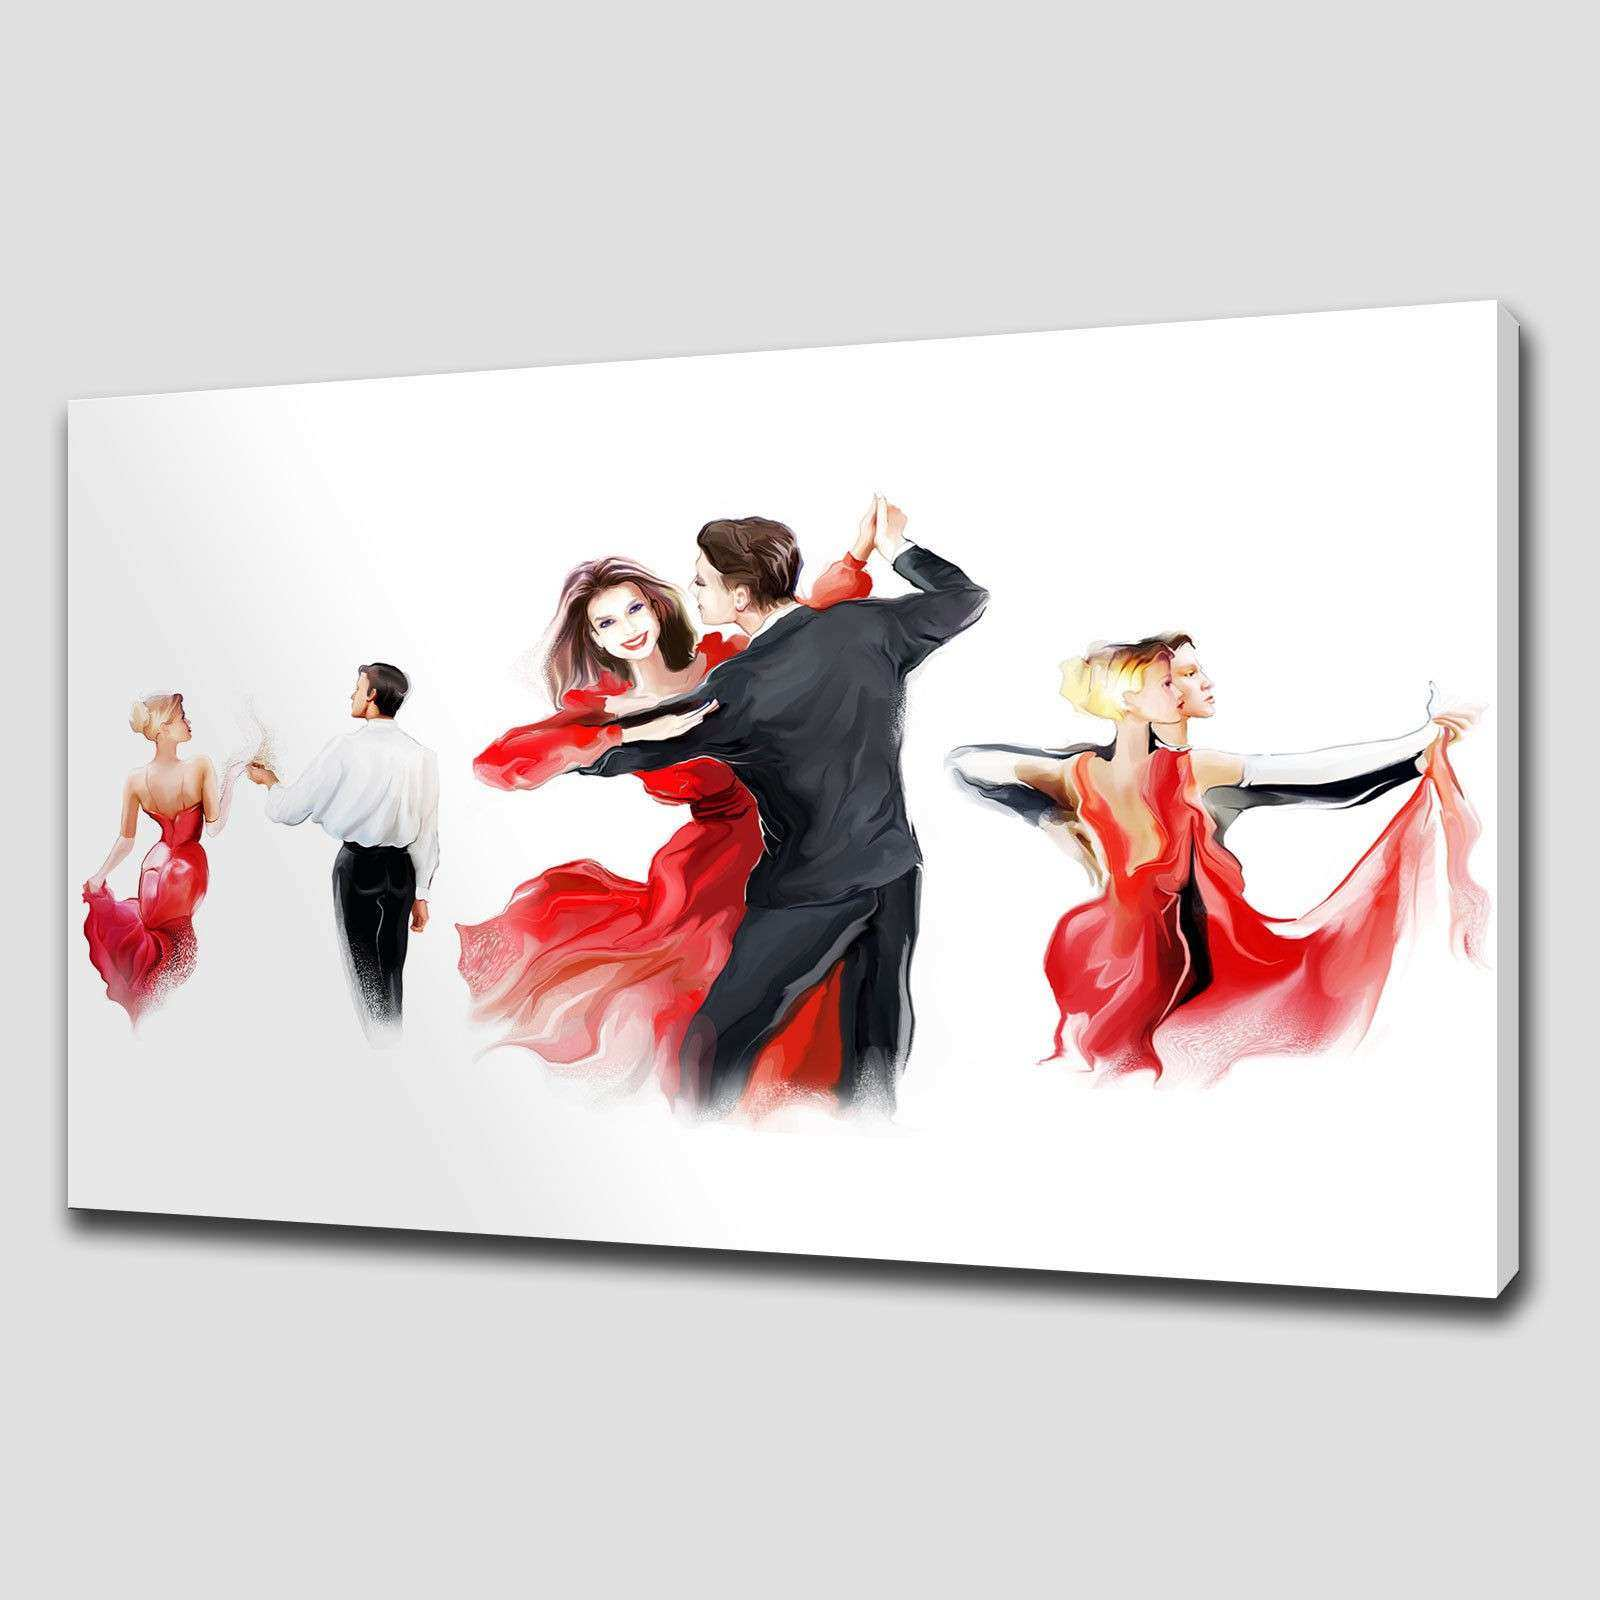 RED ABSTRACT DANCERS LARGE CANVAS WALL ART PICTURE PRINT HOME DECOR SIZE VARIETY Canvas Print Art